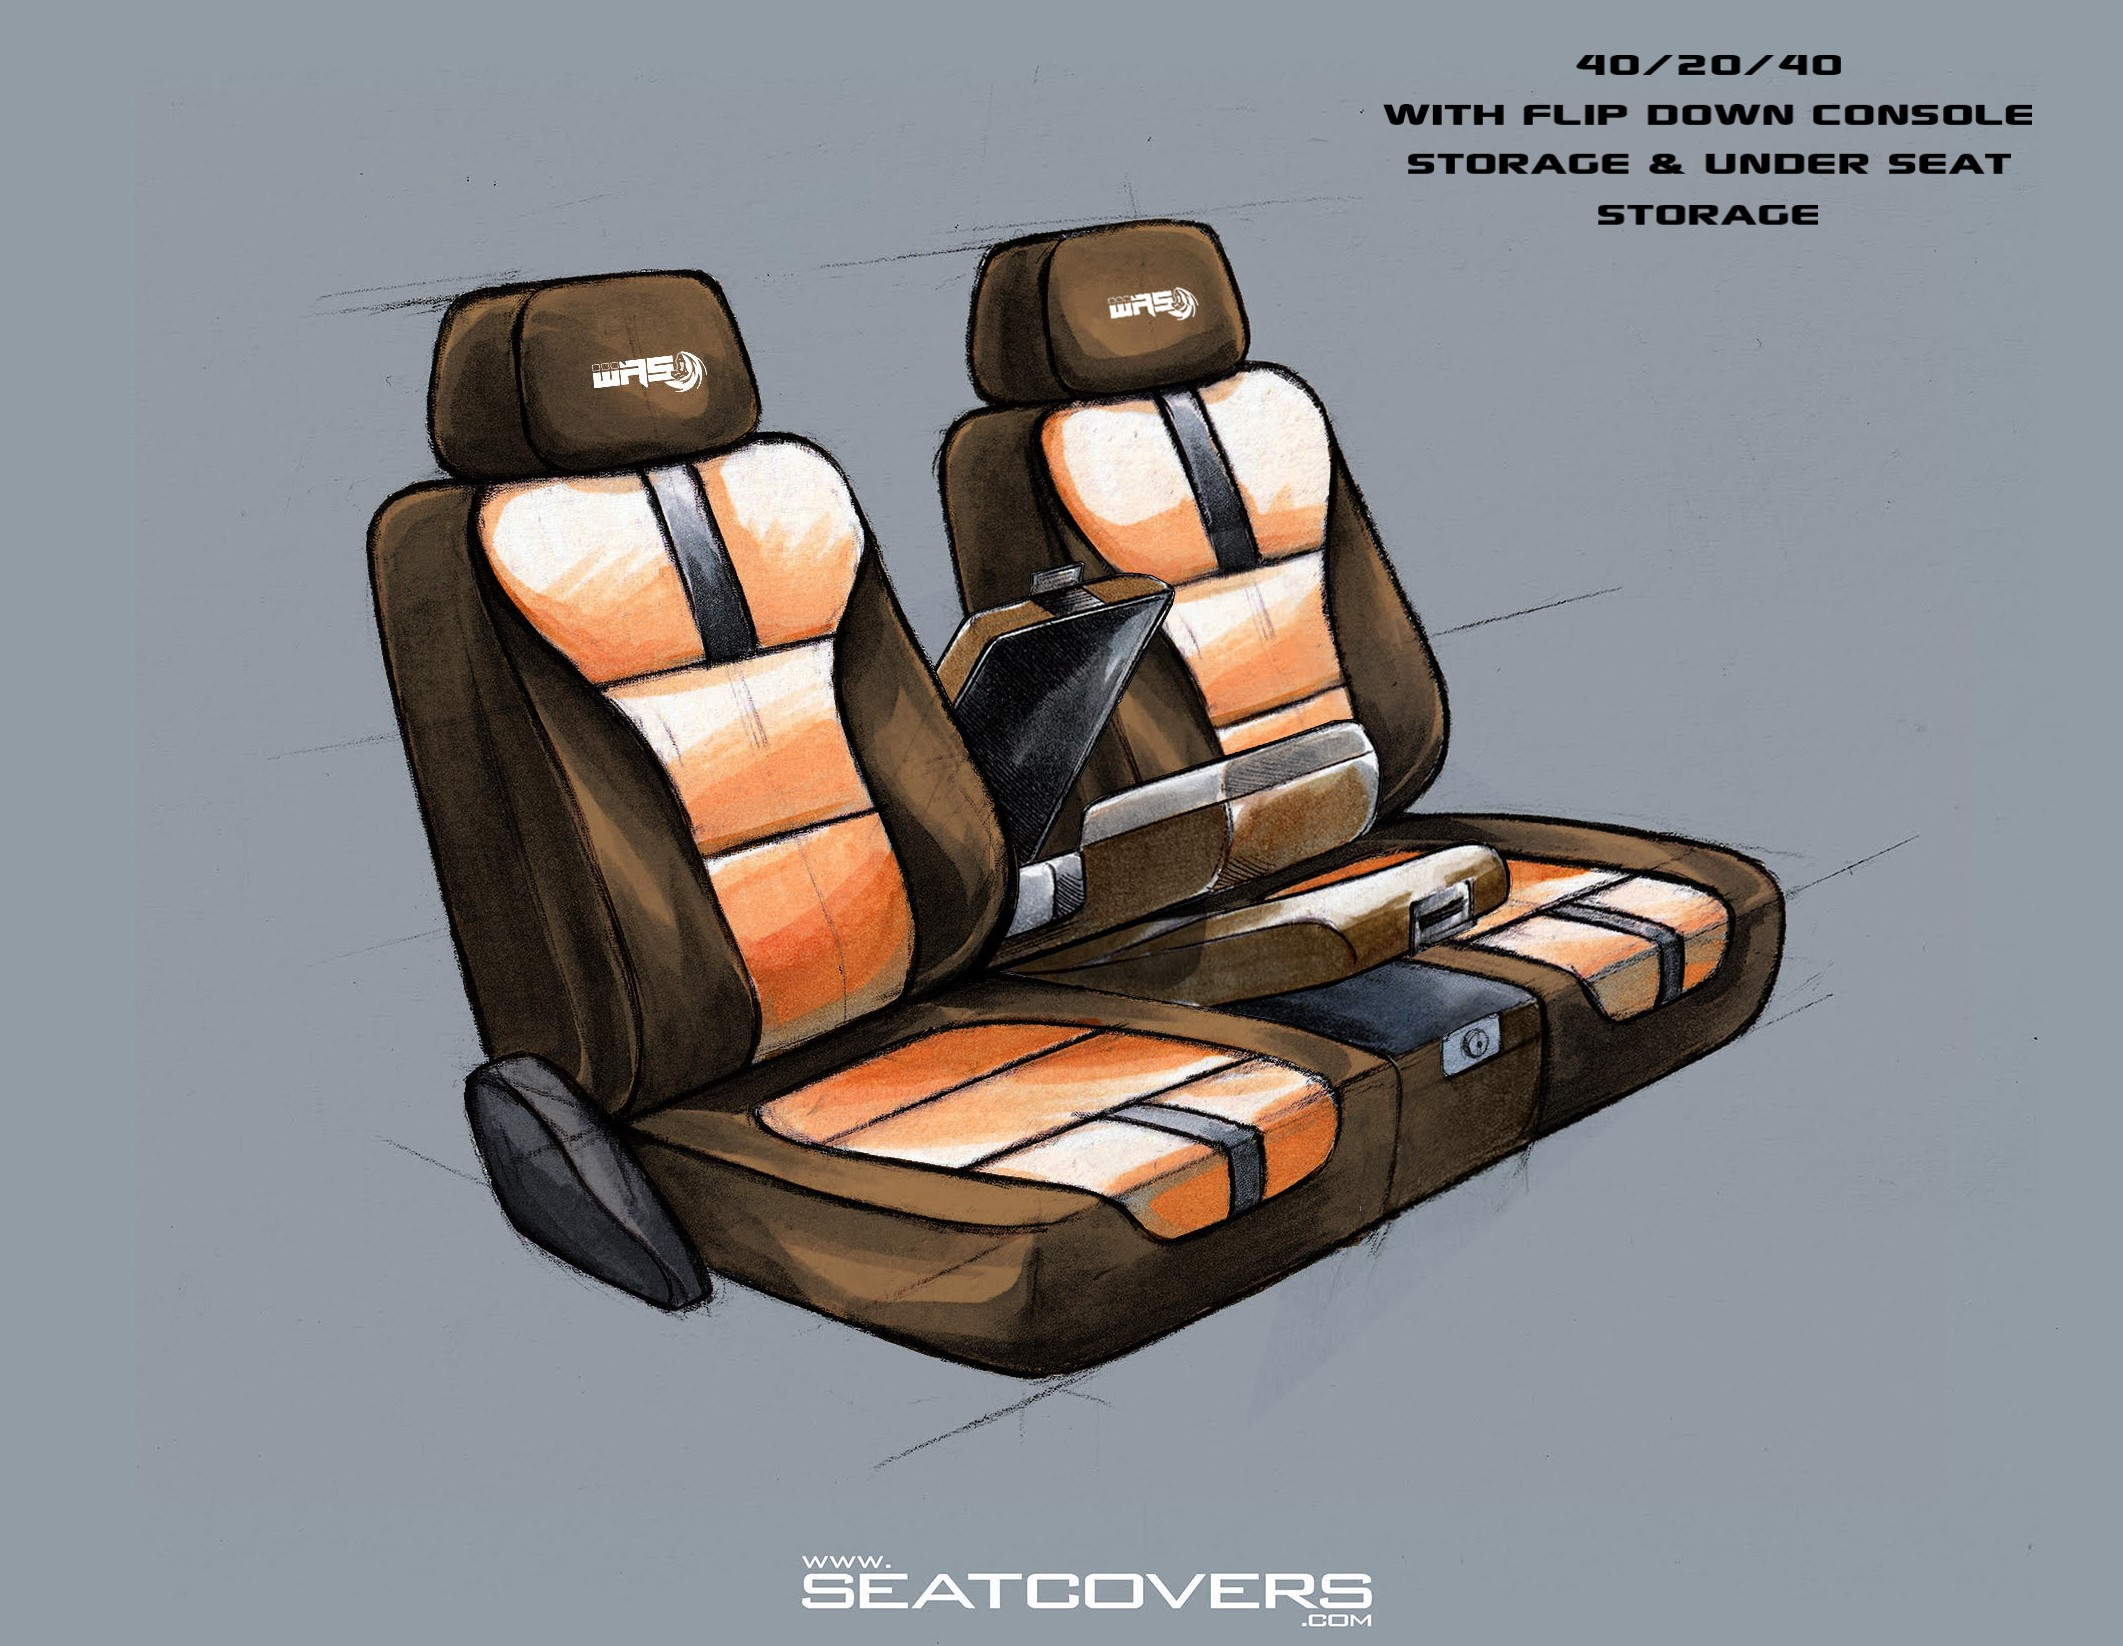 Toyota Tundra seat covers front seats seatcovers.com